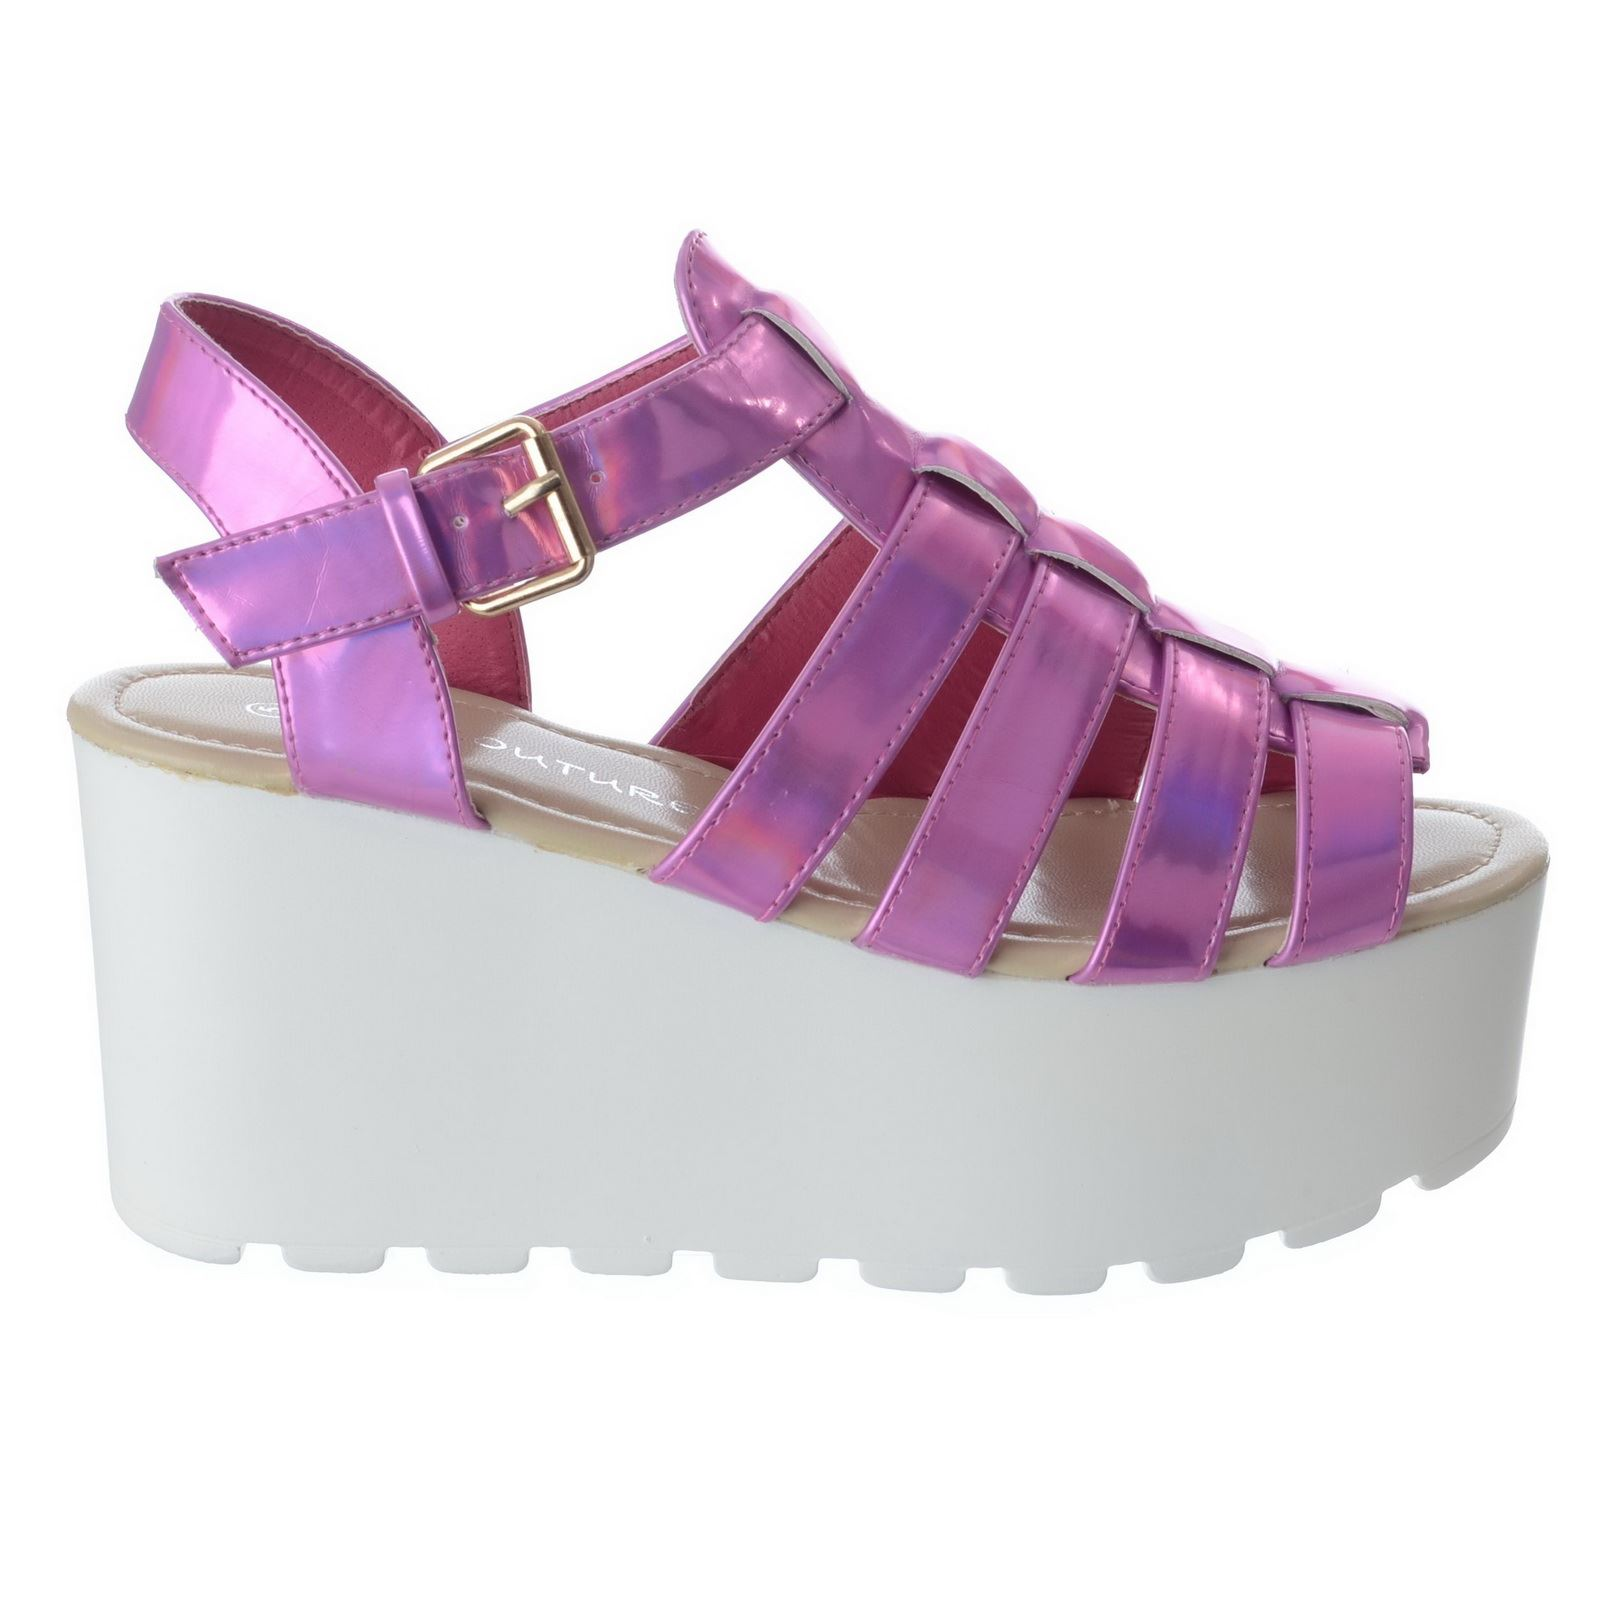 Womens sandals size 13 - Womens Ladies Chunky Sole Gladiator Summer Wedges Platform